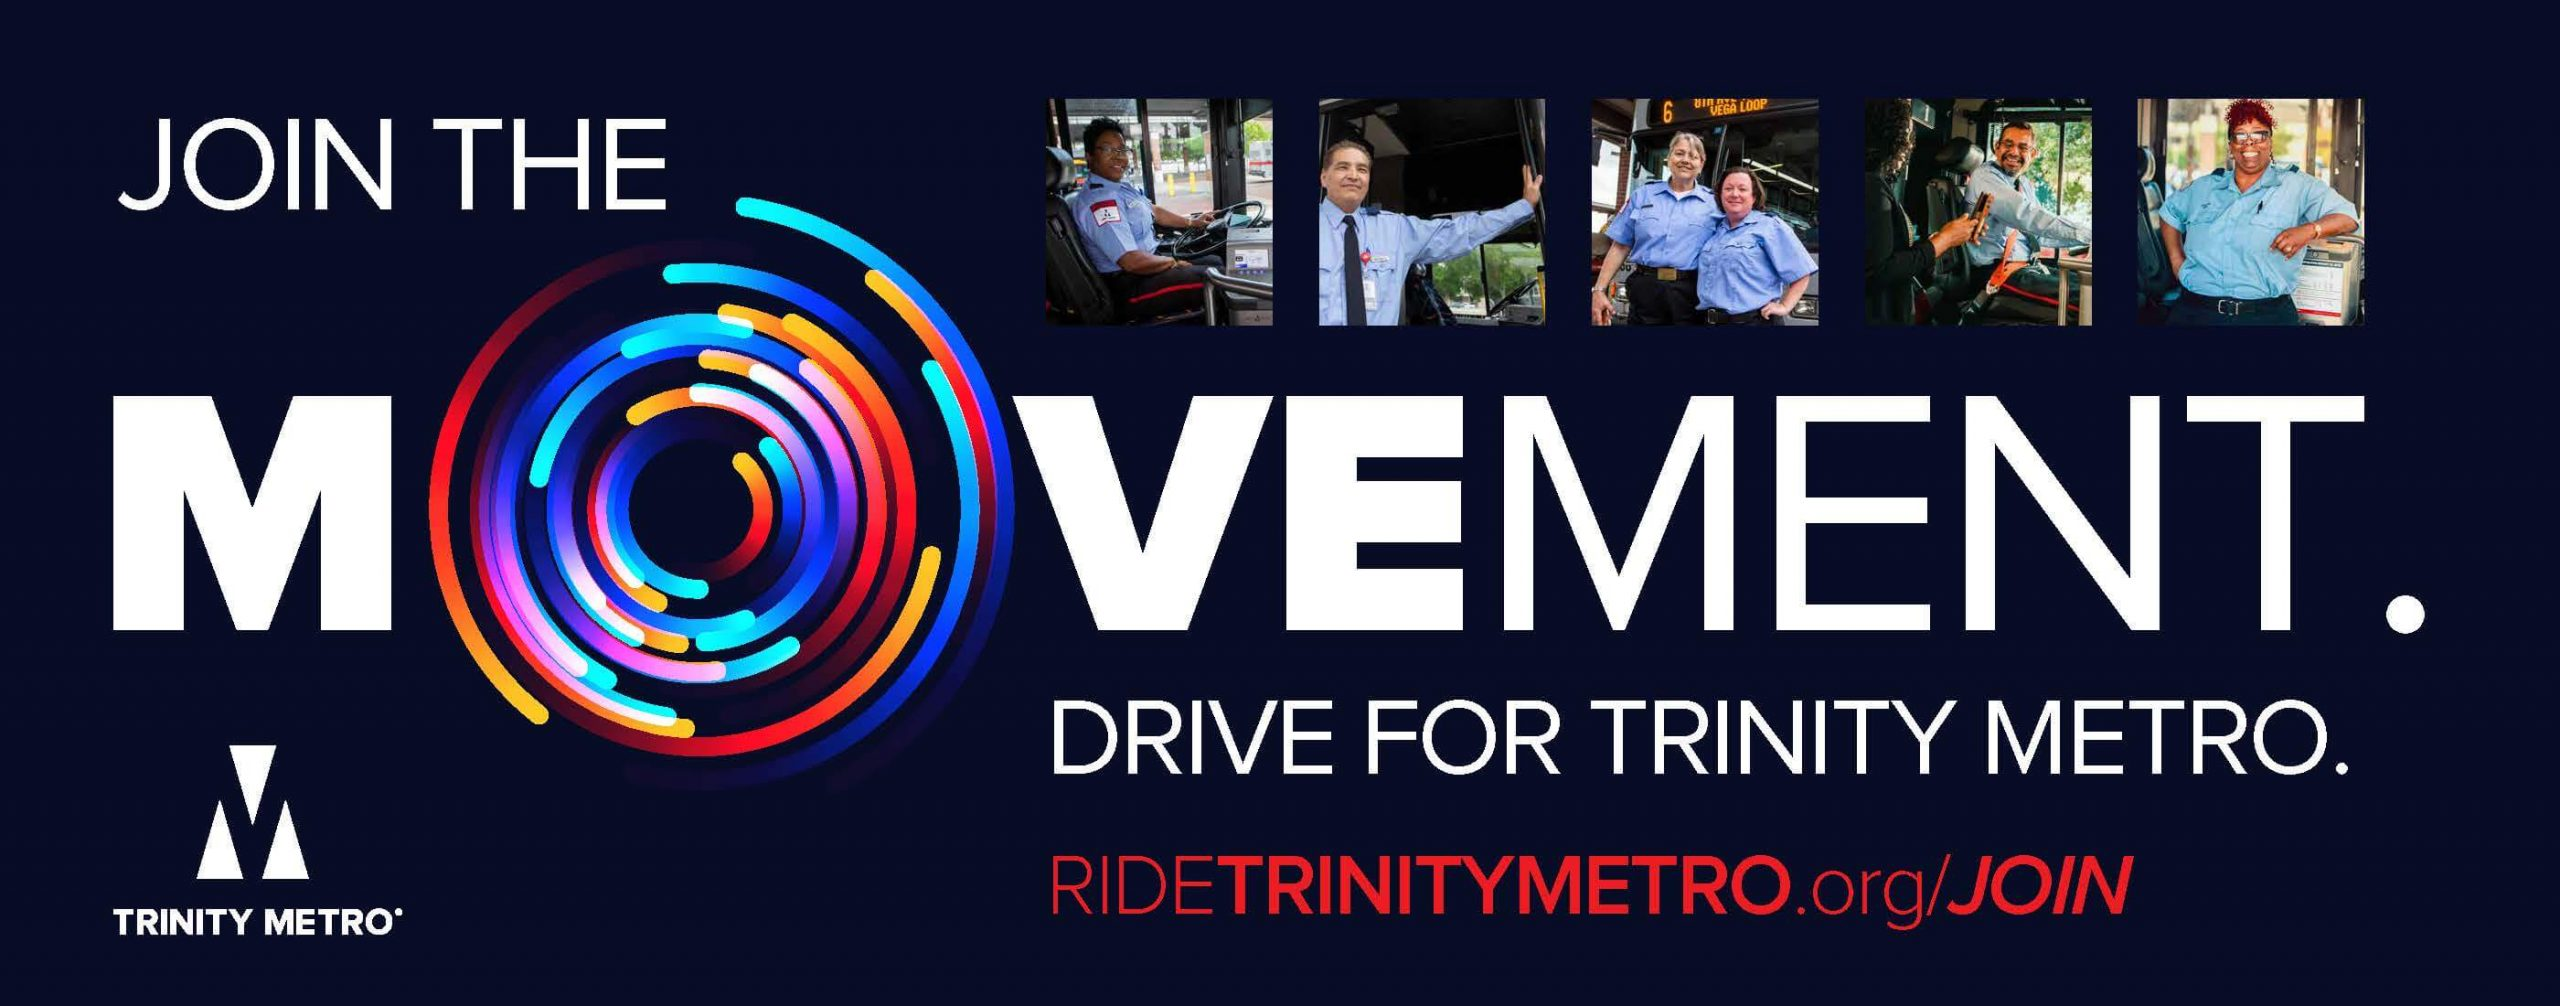 Join the Movement. Drive for Trinity Metro